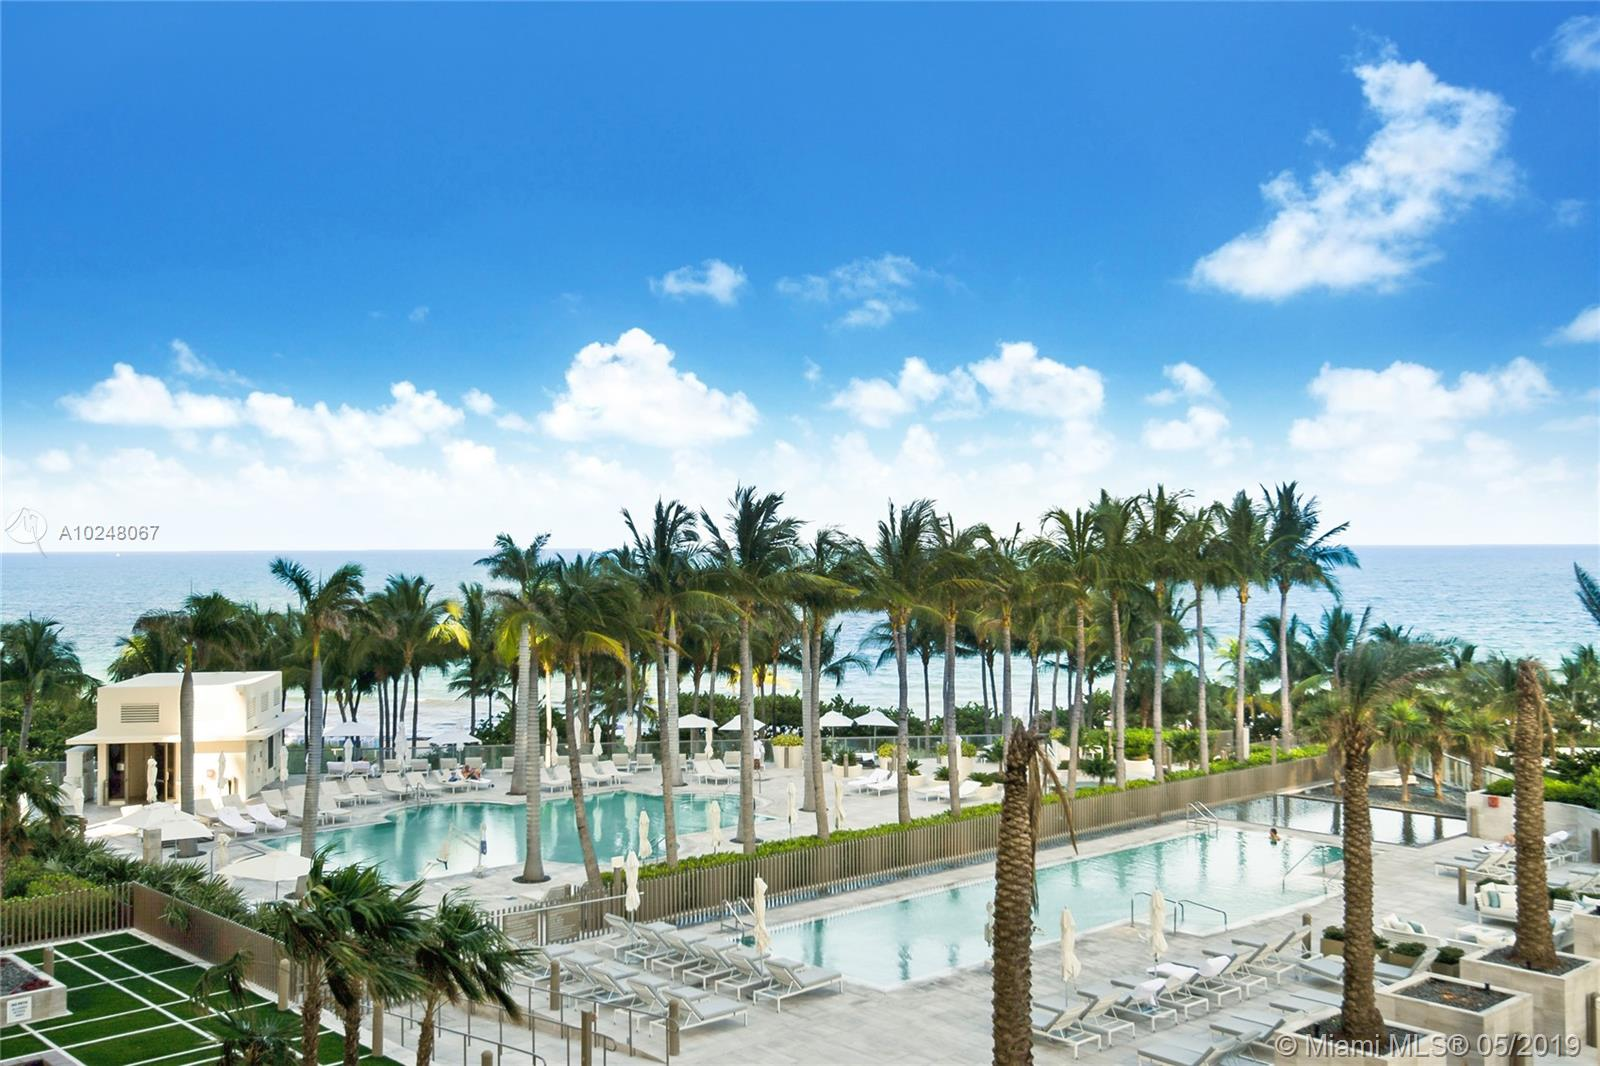 9701 Collins Ave, Unit #502S Luxury Real Estate